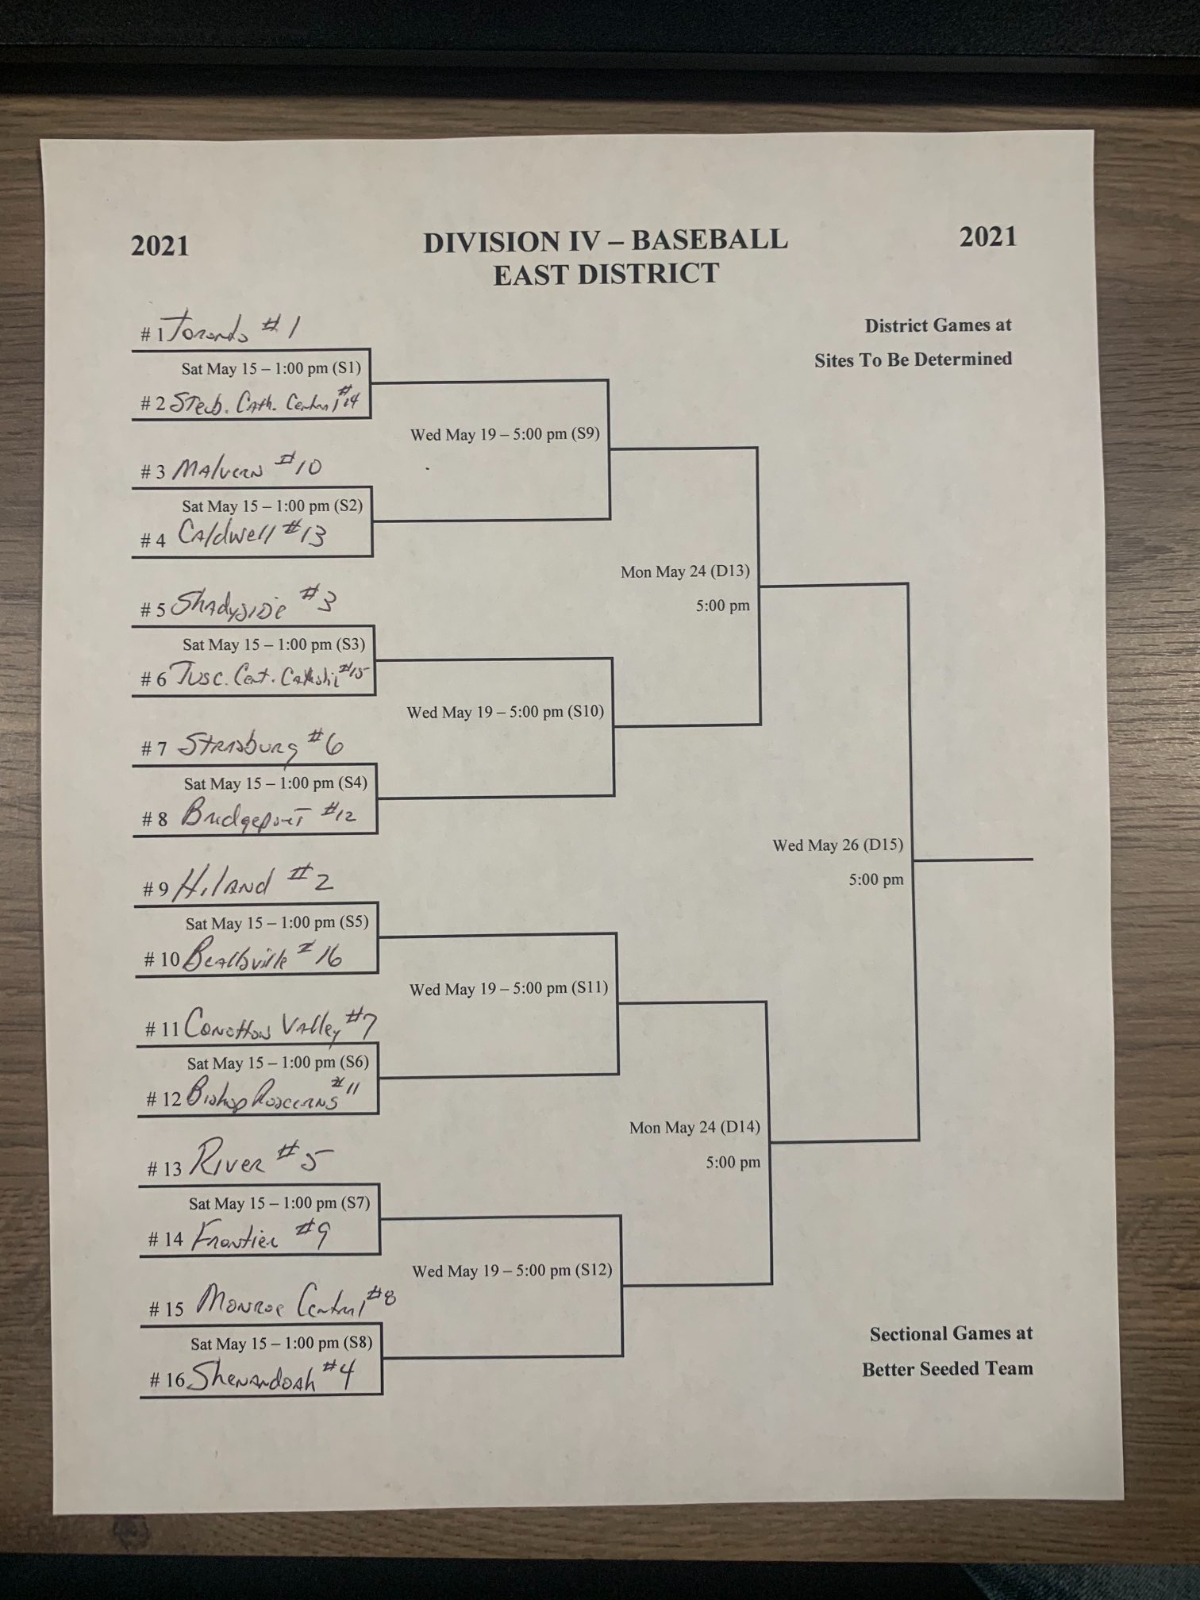 Strasburg Baseball Earns #6 Seed in East District Division IV Tournament Draw – Tigers will host Bridgeport Saturday May 15th at 1:00 PM